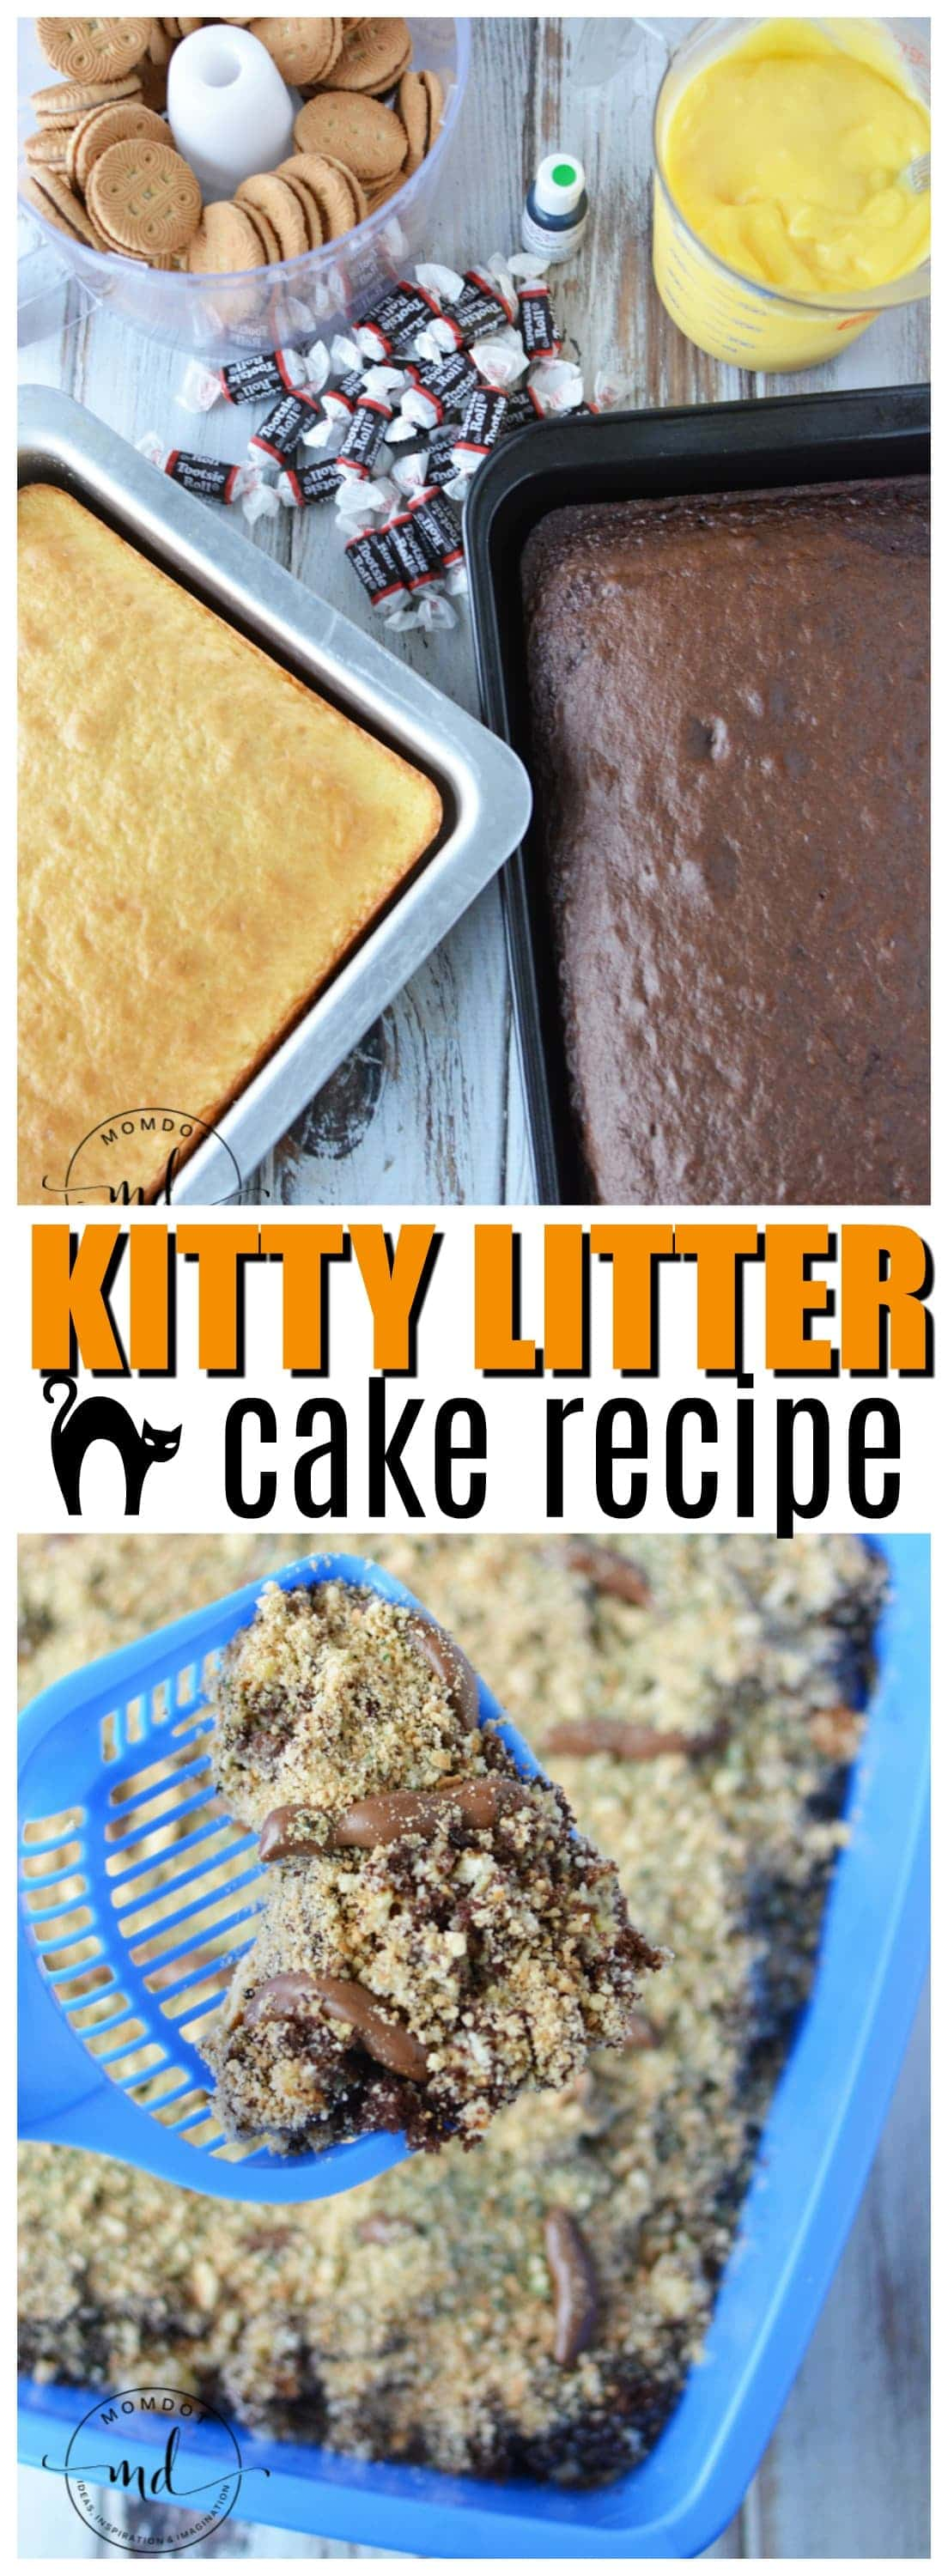 Kitty Litter Cake | How to make Kitty Litter Cake | Halloween Dessert | #kittylittercake #cats #recipe #dessert #howtomake #halloween